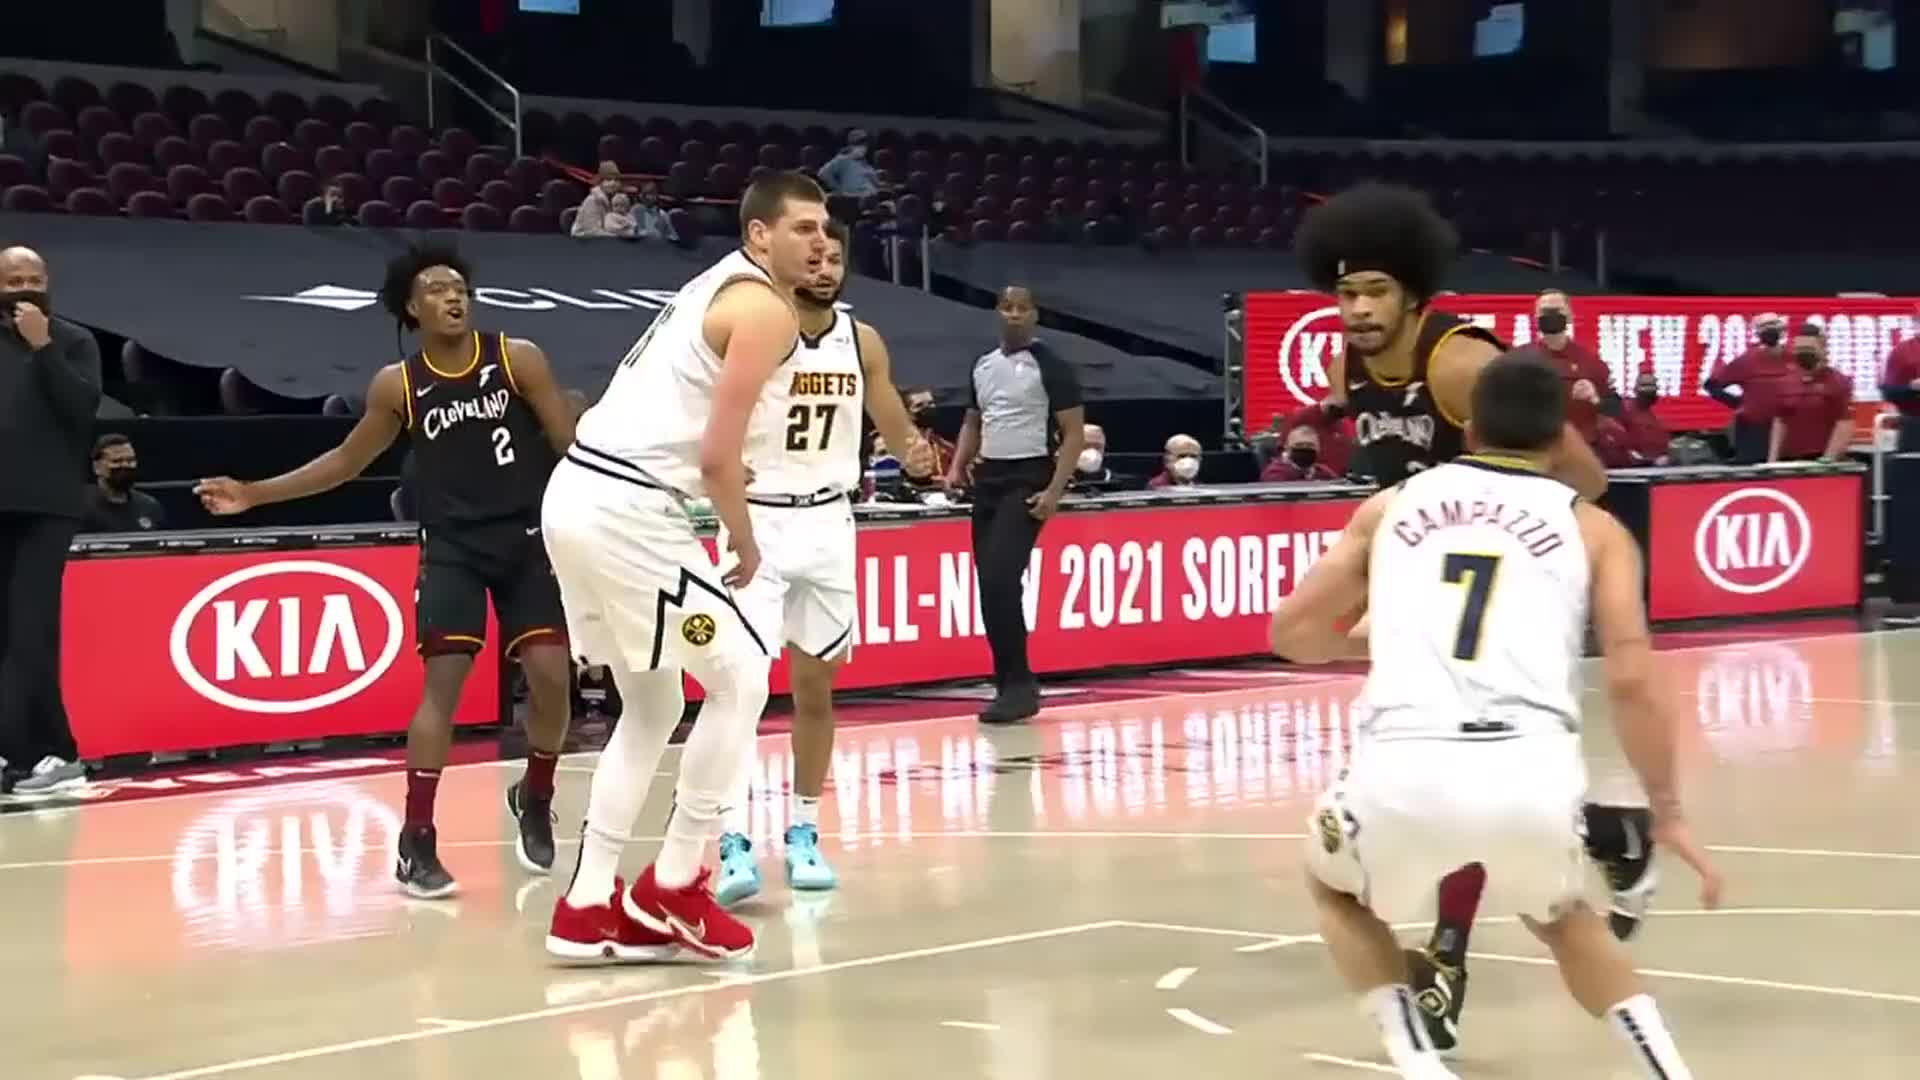 Sexton Finds Allen who Skies for the Dunk